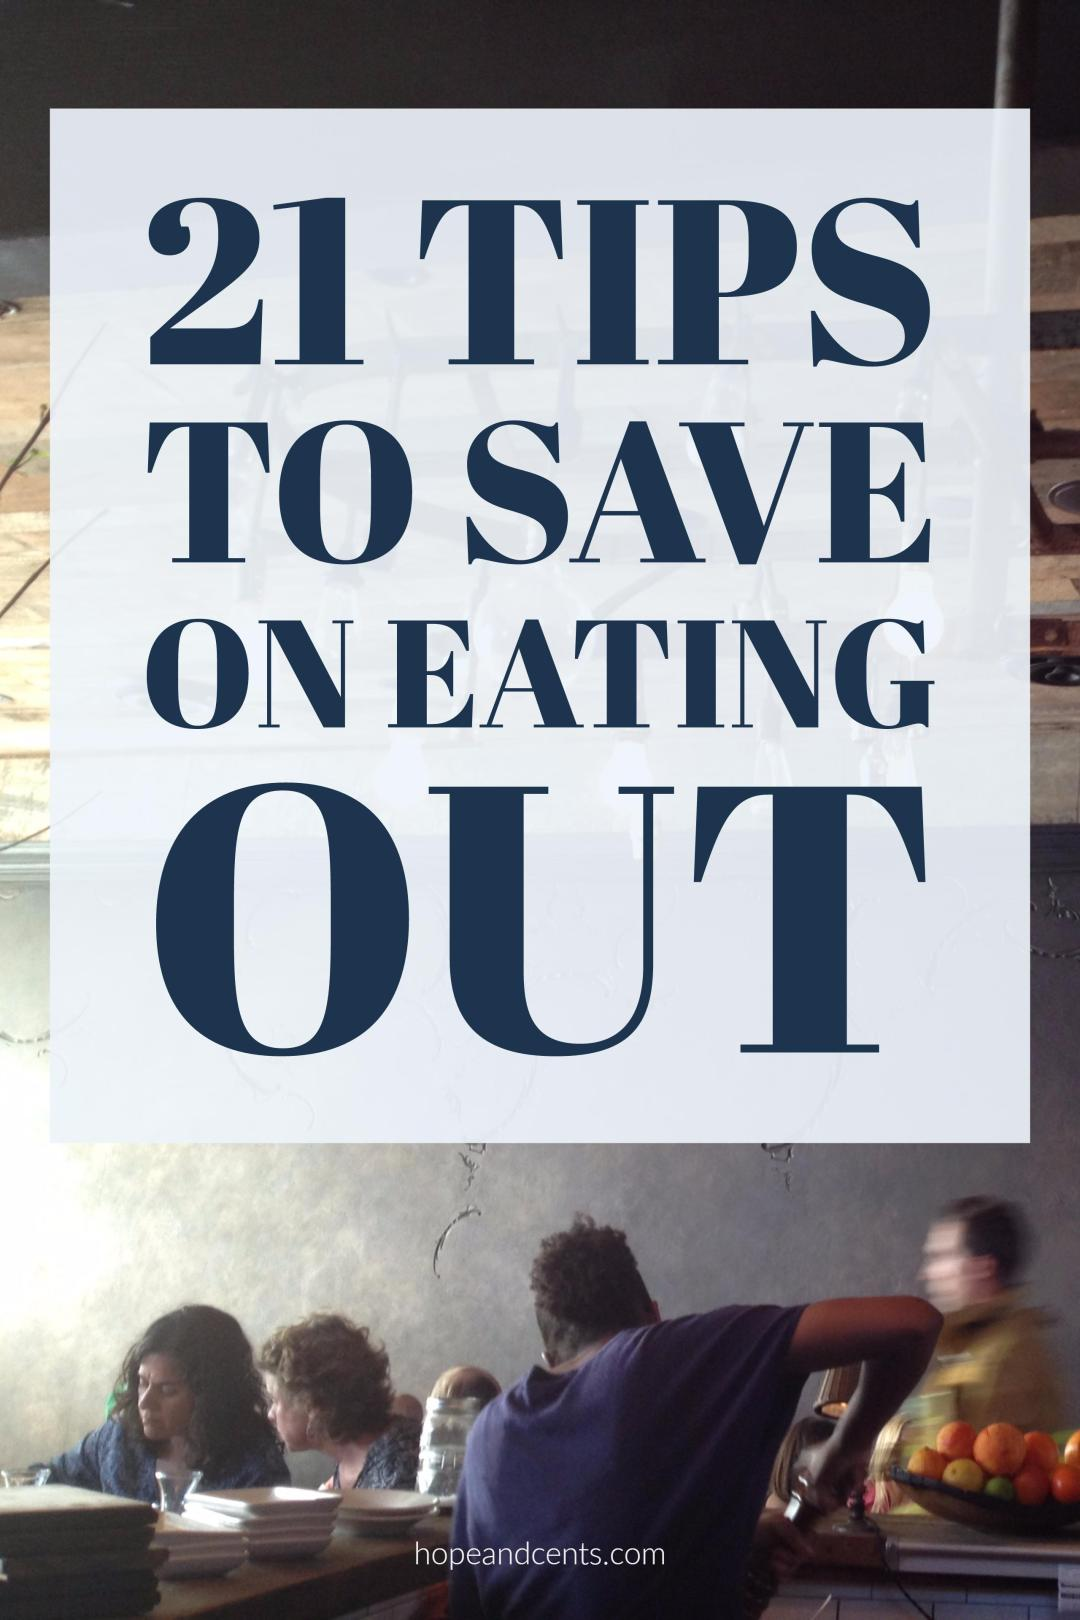 Eating out can be a huge budget buster. Be frugal and save money on eating out with these tips.